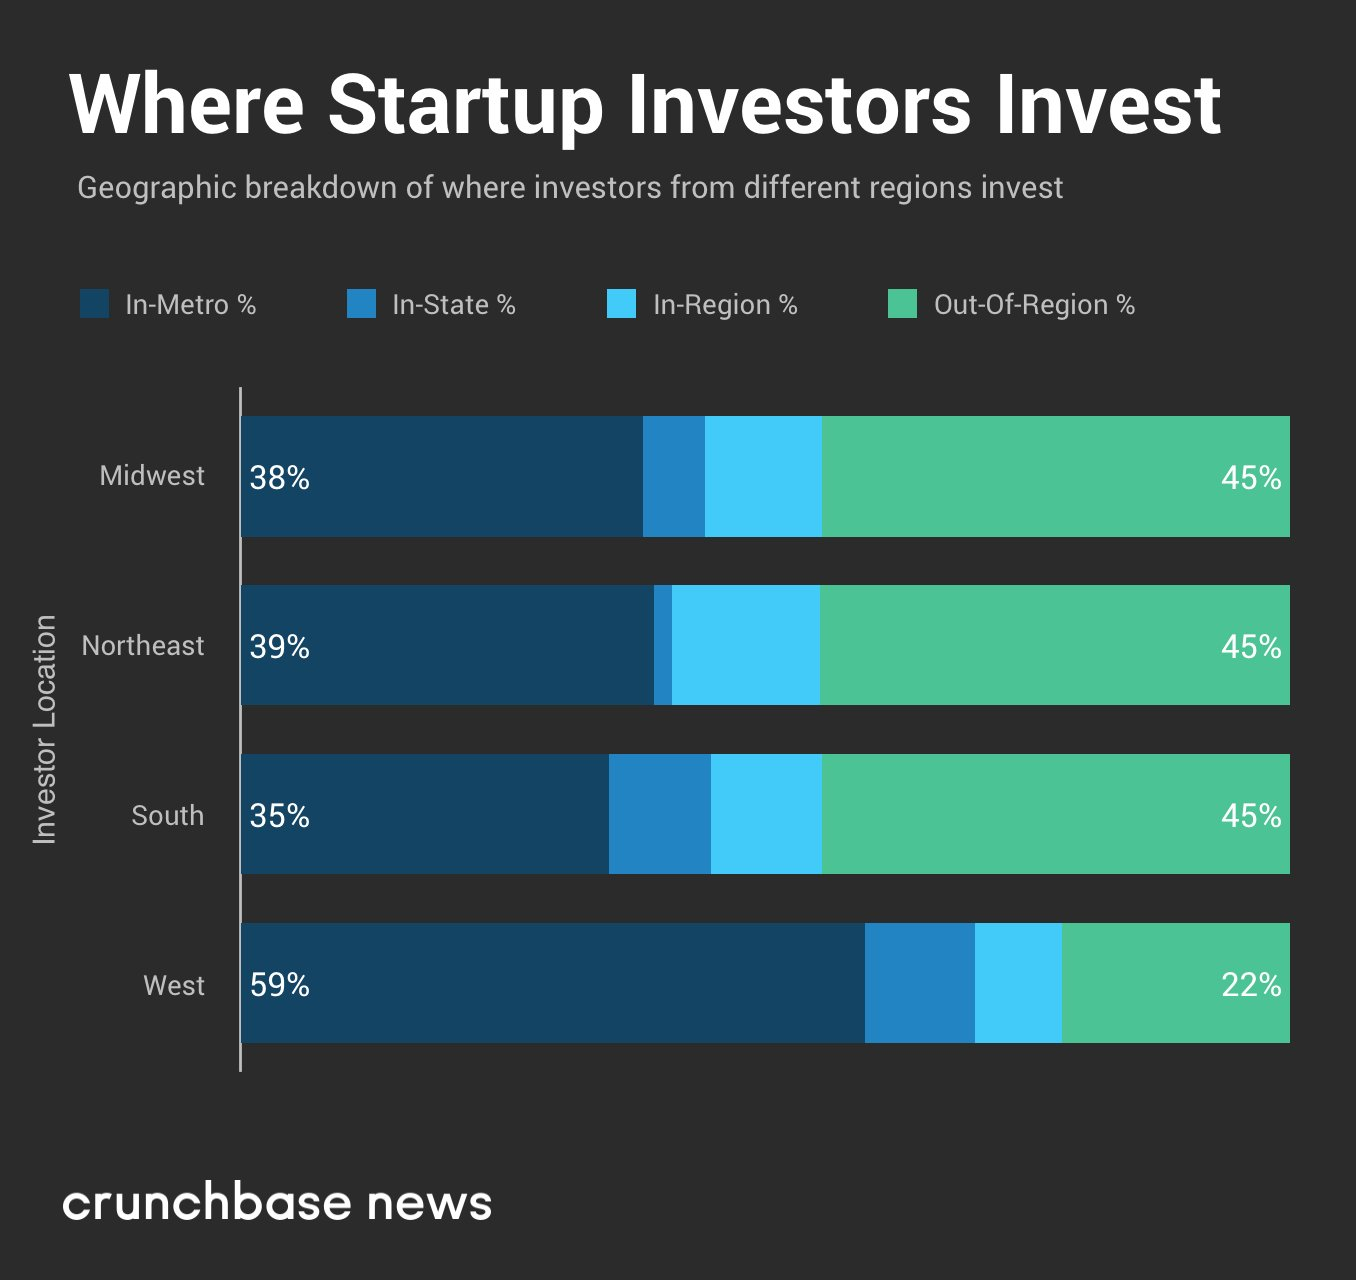 Where and why venture capitalists invest close to home https://t.co/XyoMCQuvEA https://t.co/ijXZMPBLvV